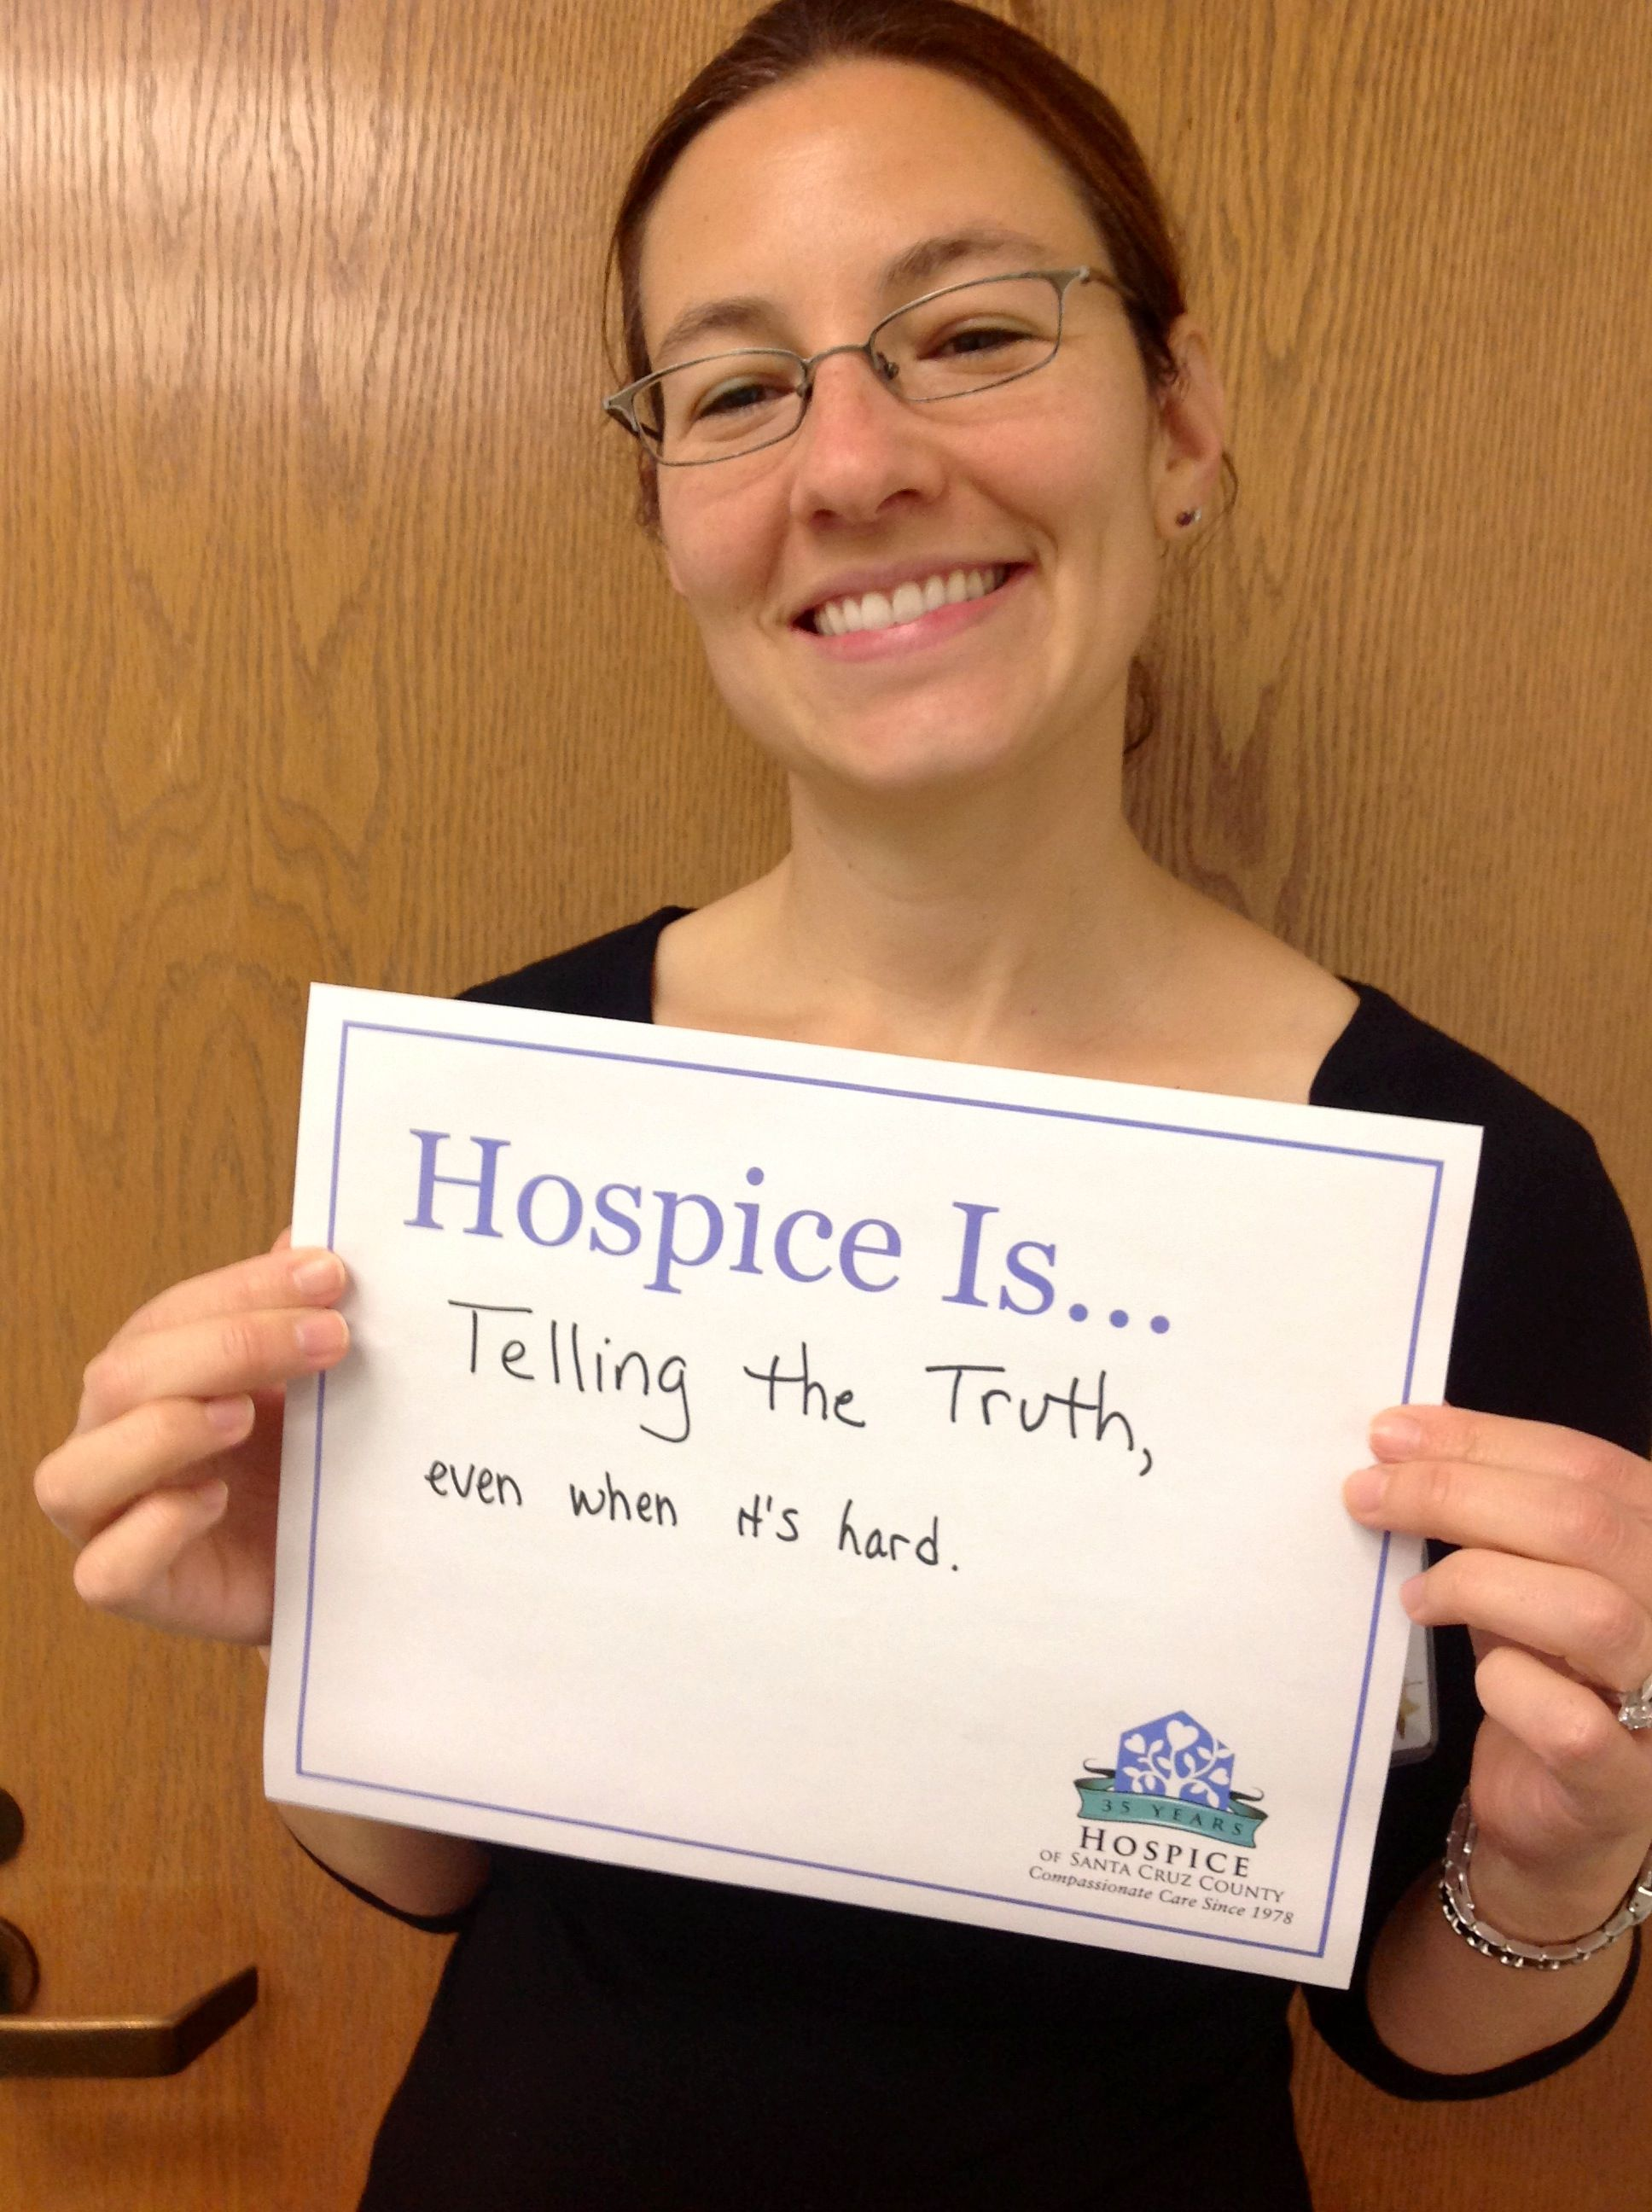 Pin on hospice care